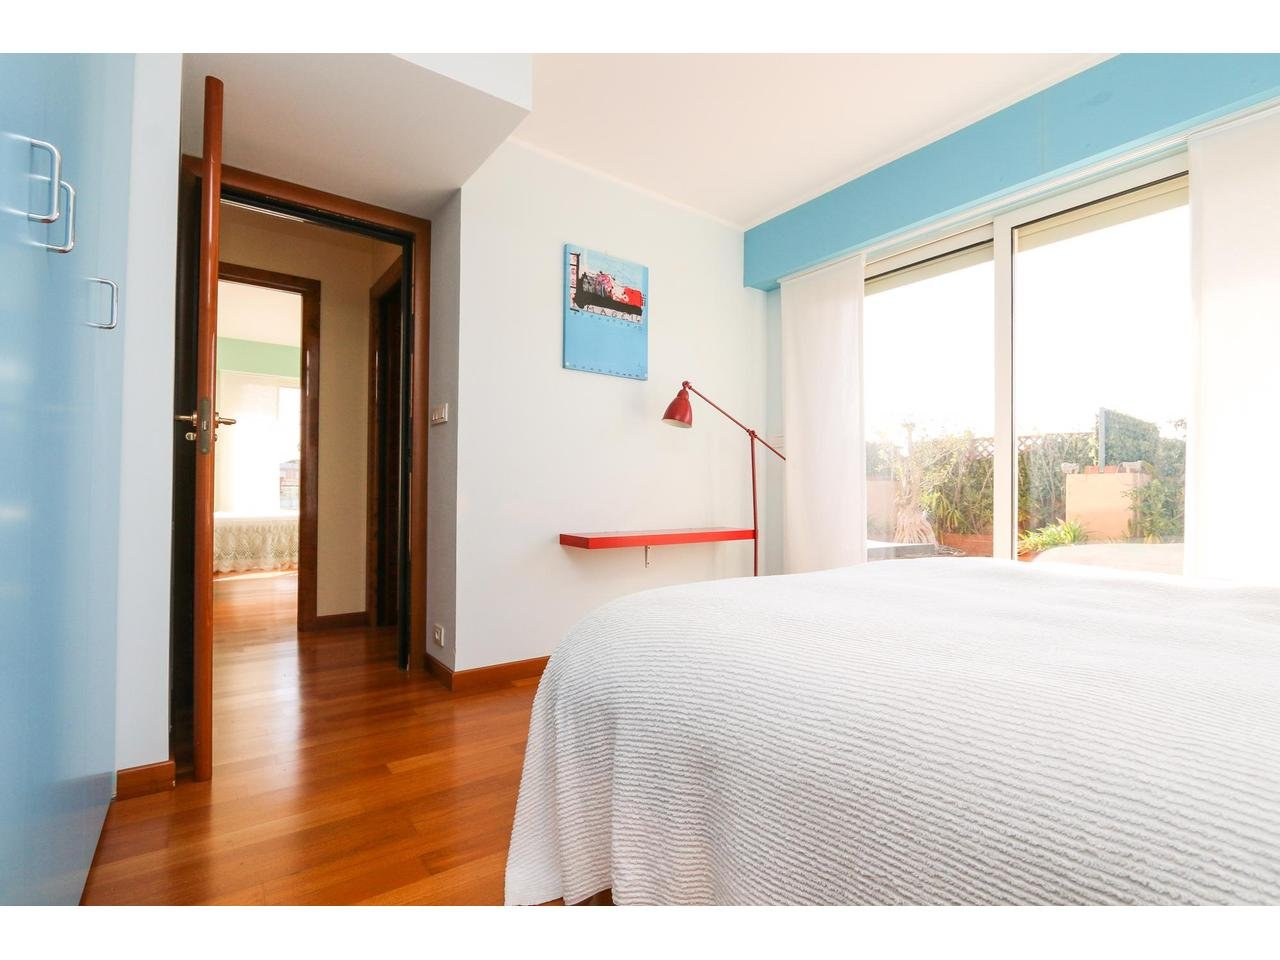 Appartement  4 Rooms 92.28m2  for sale   990000 €